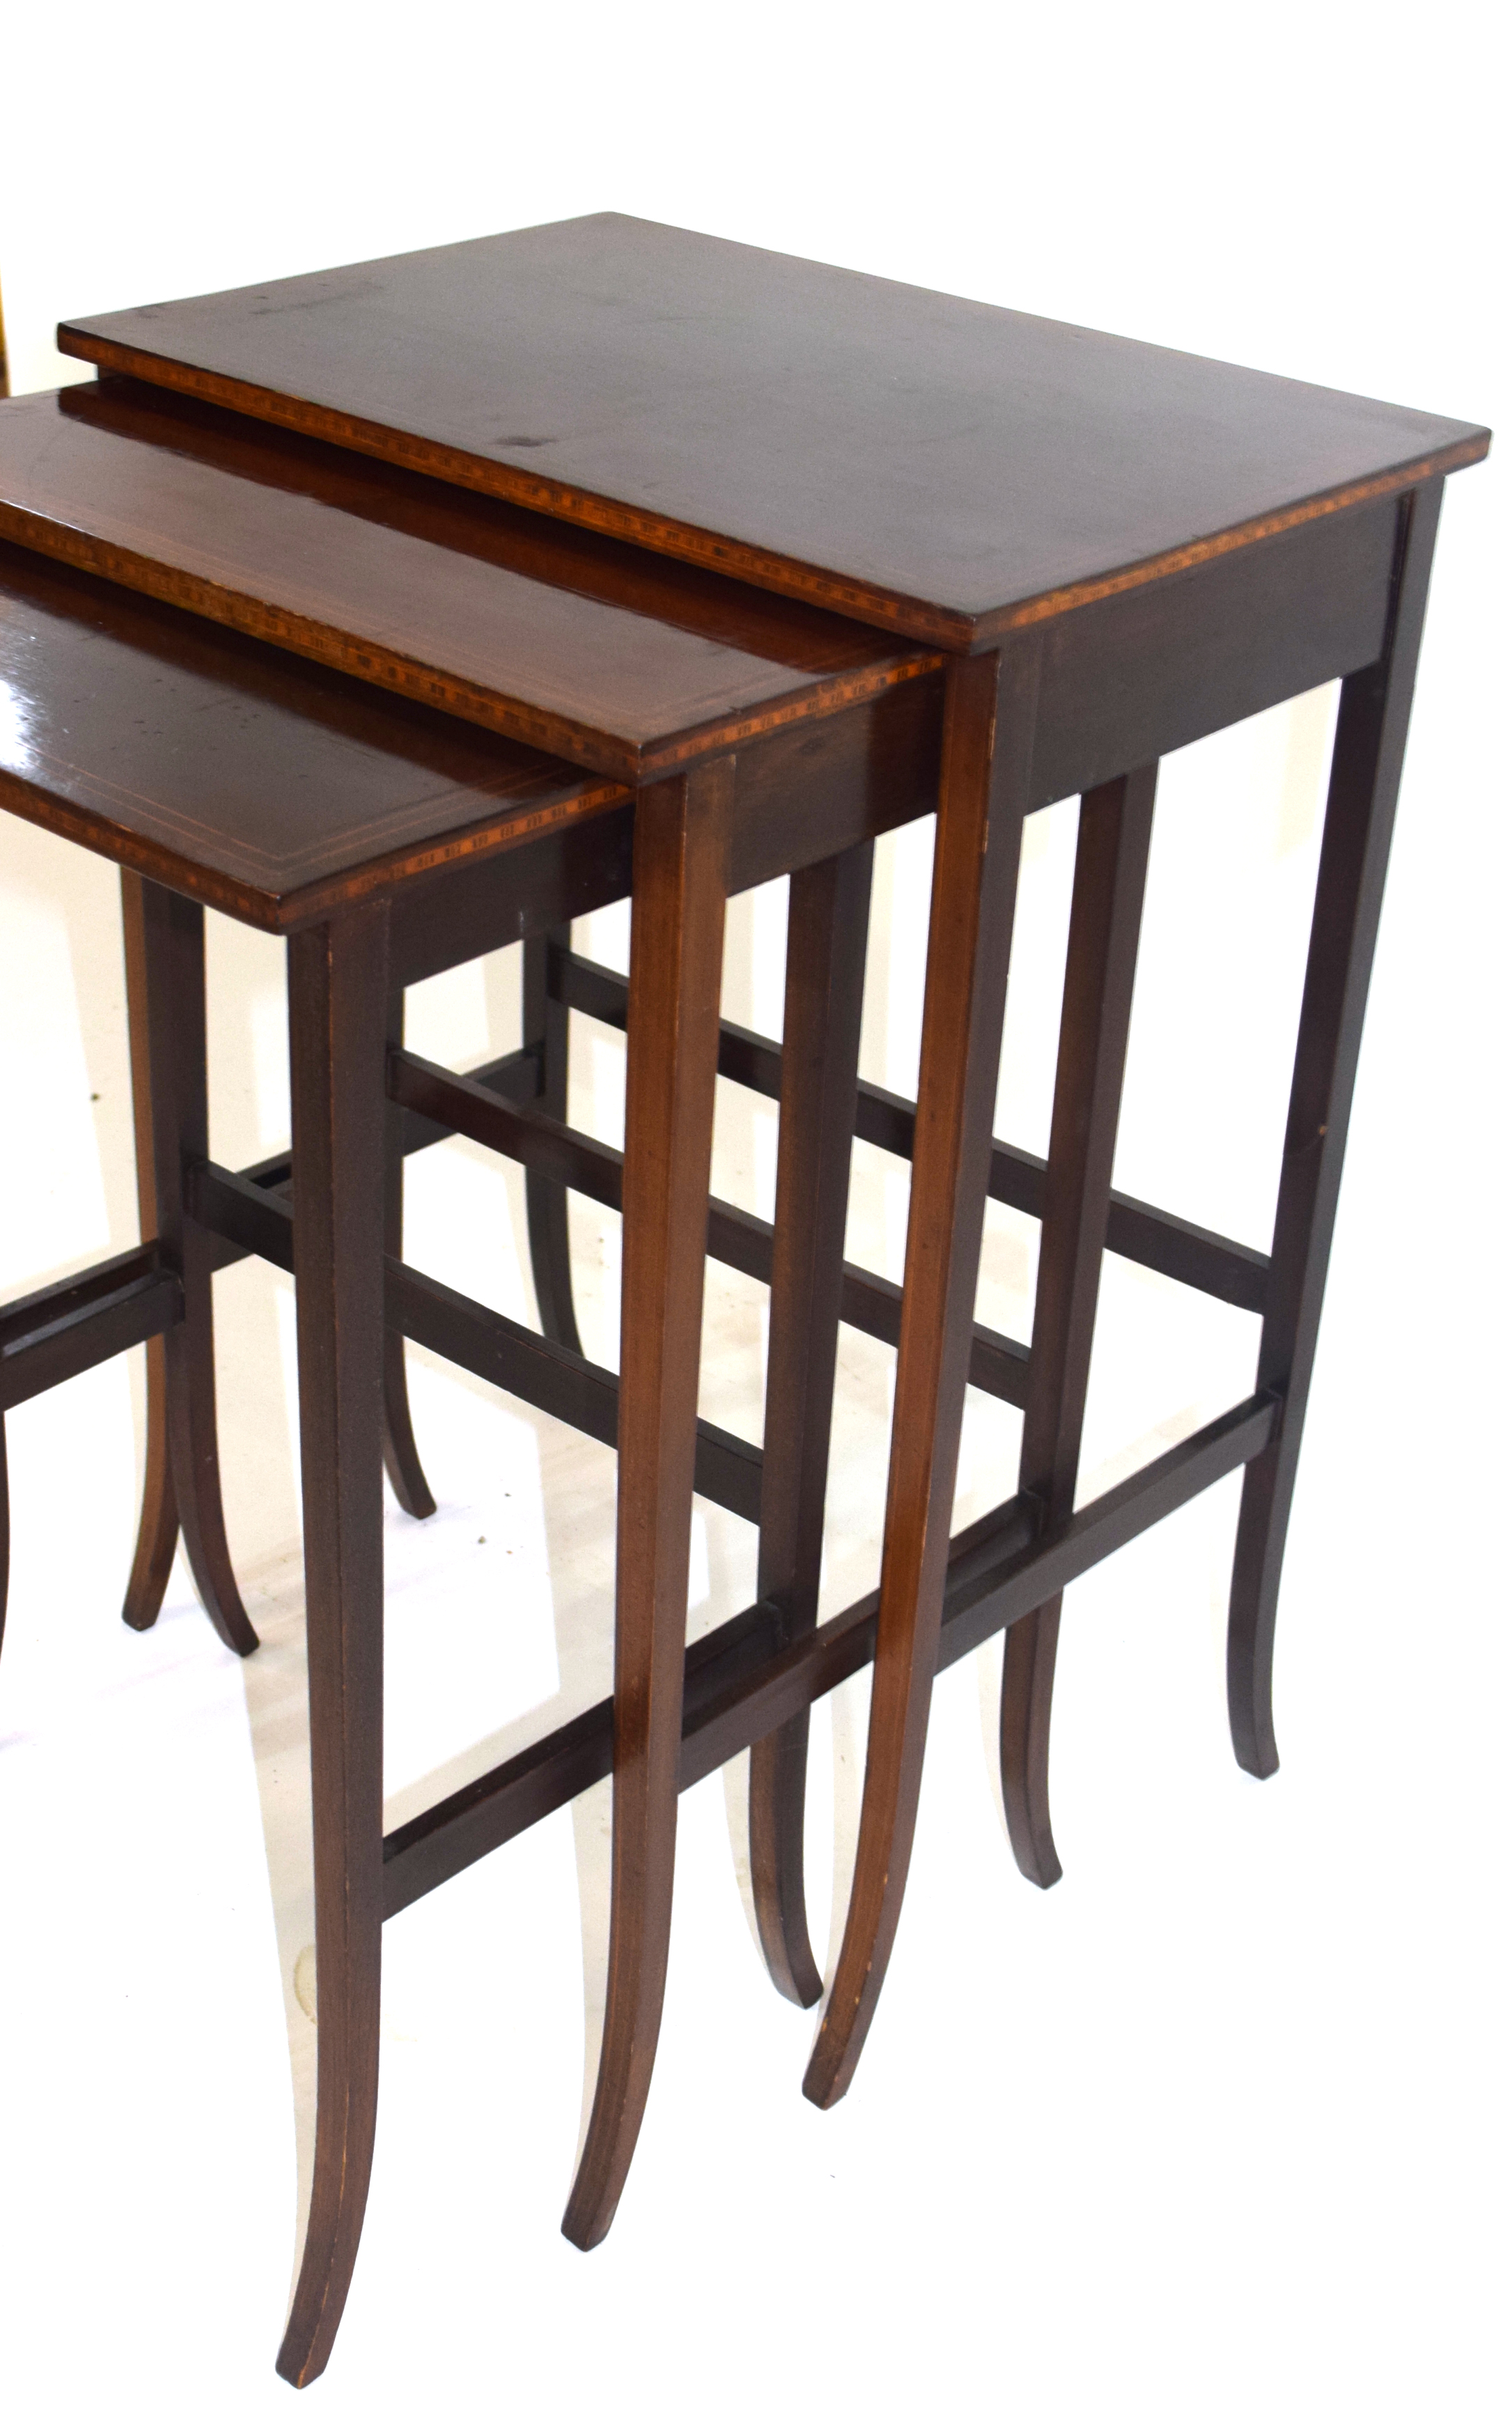 Nest of three Edwardian mahogany and inlaid occasional tables on slender legs, largest 49.5cm wide - Image 4 of 5